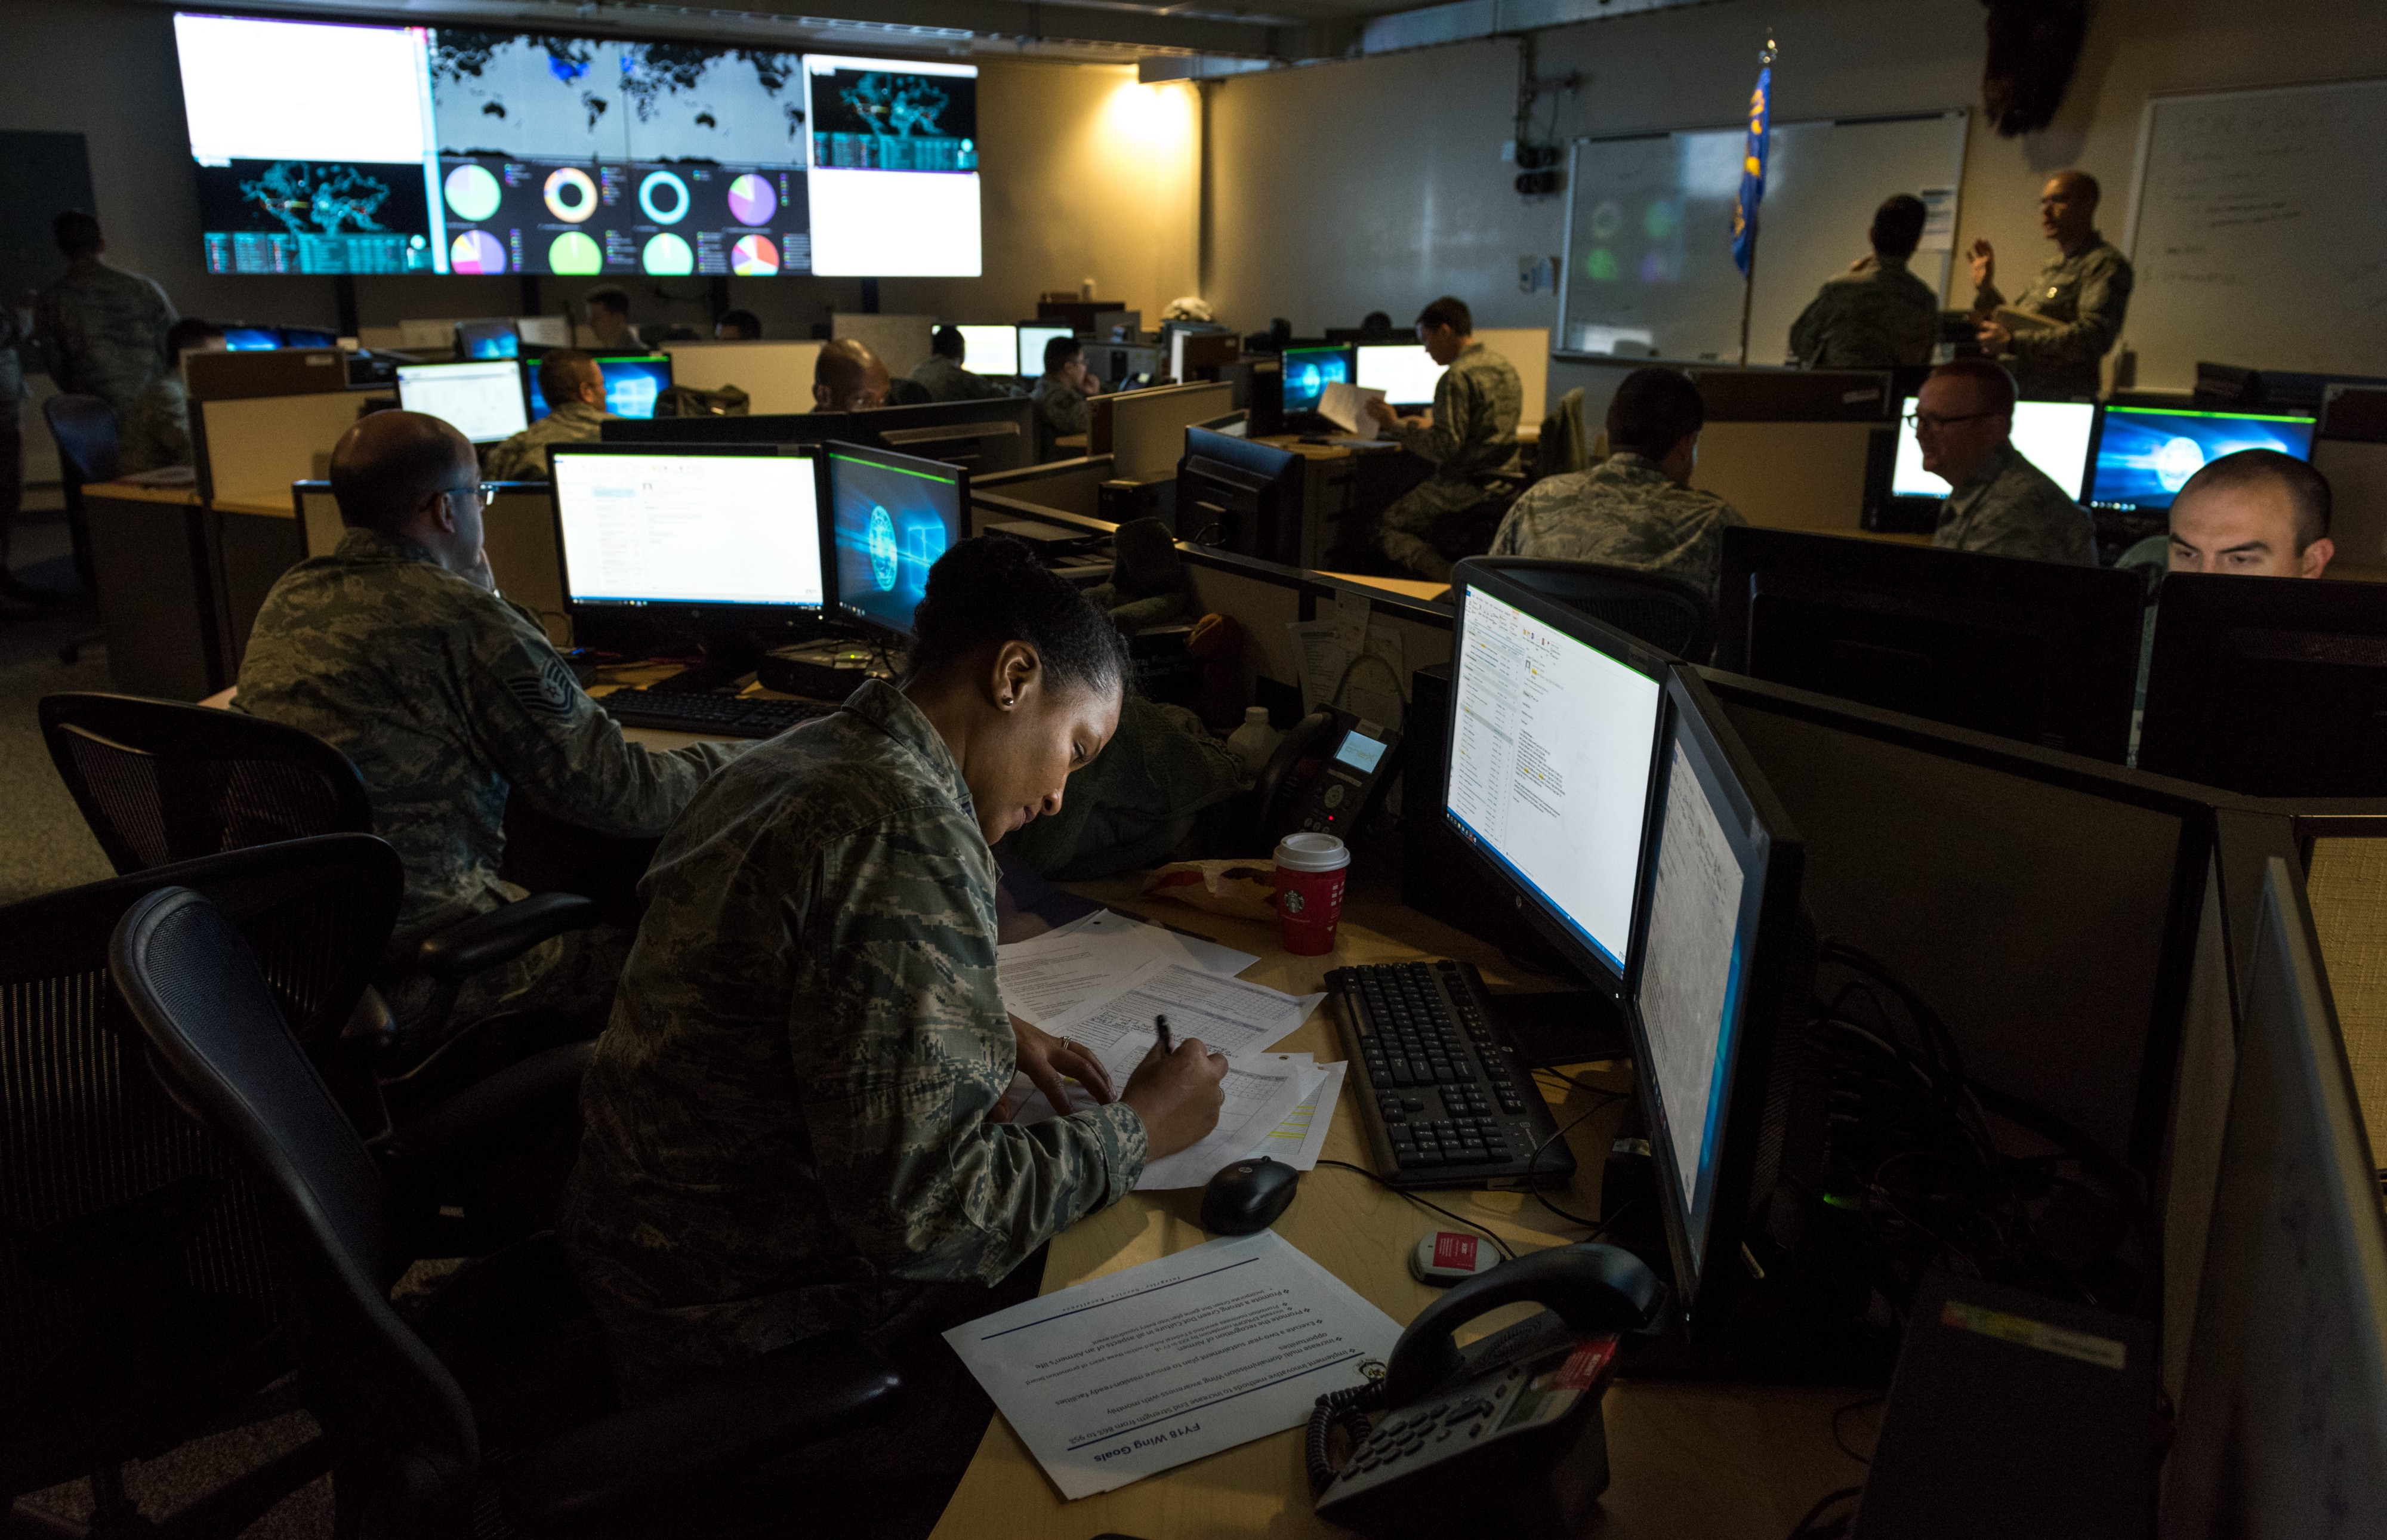 Cyber warfare operators monitor cyber attacks at Warfield Air National Guard Base, Middle River, MD, December 2, 2017. Photo by J.M. Eddins Jr./U.S. Air Force